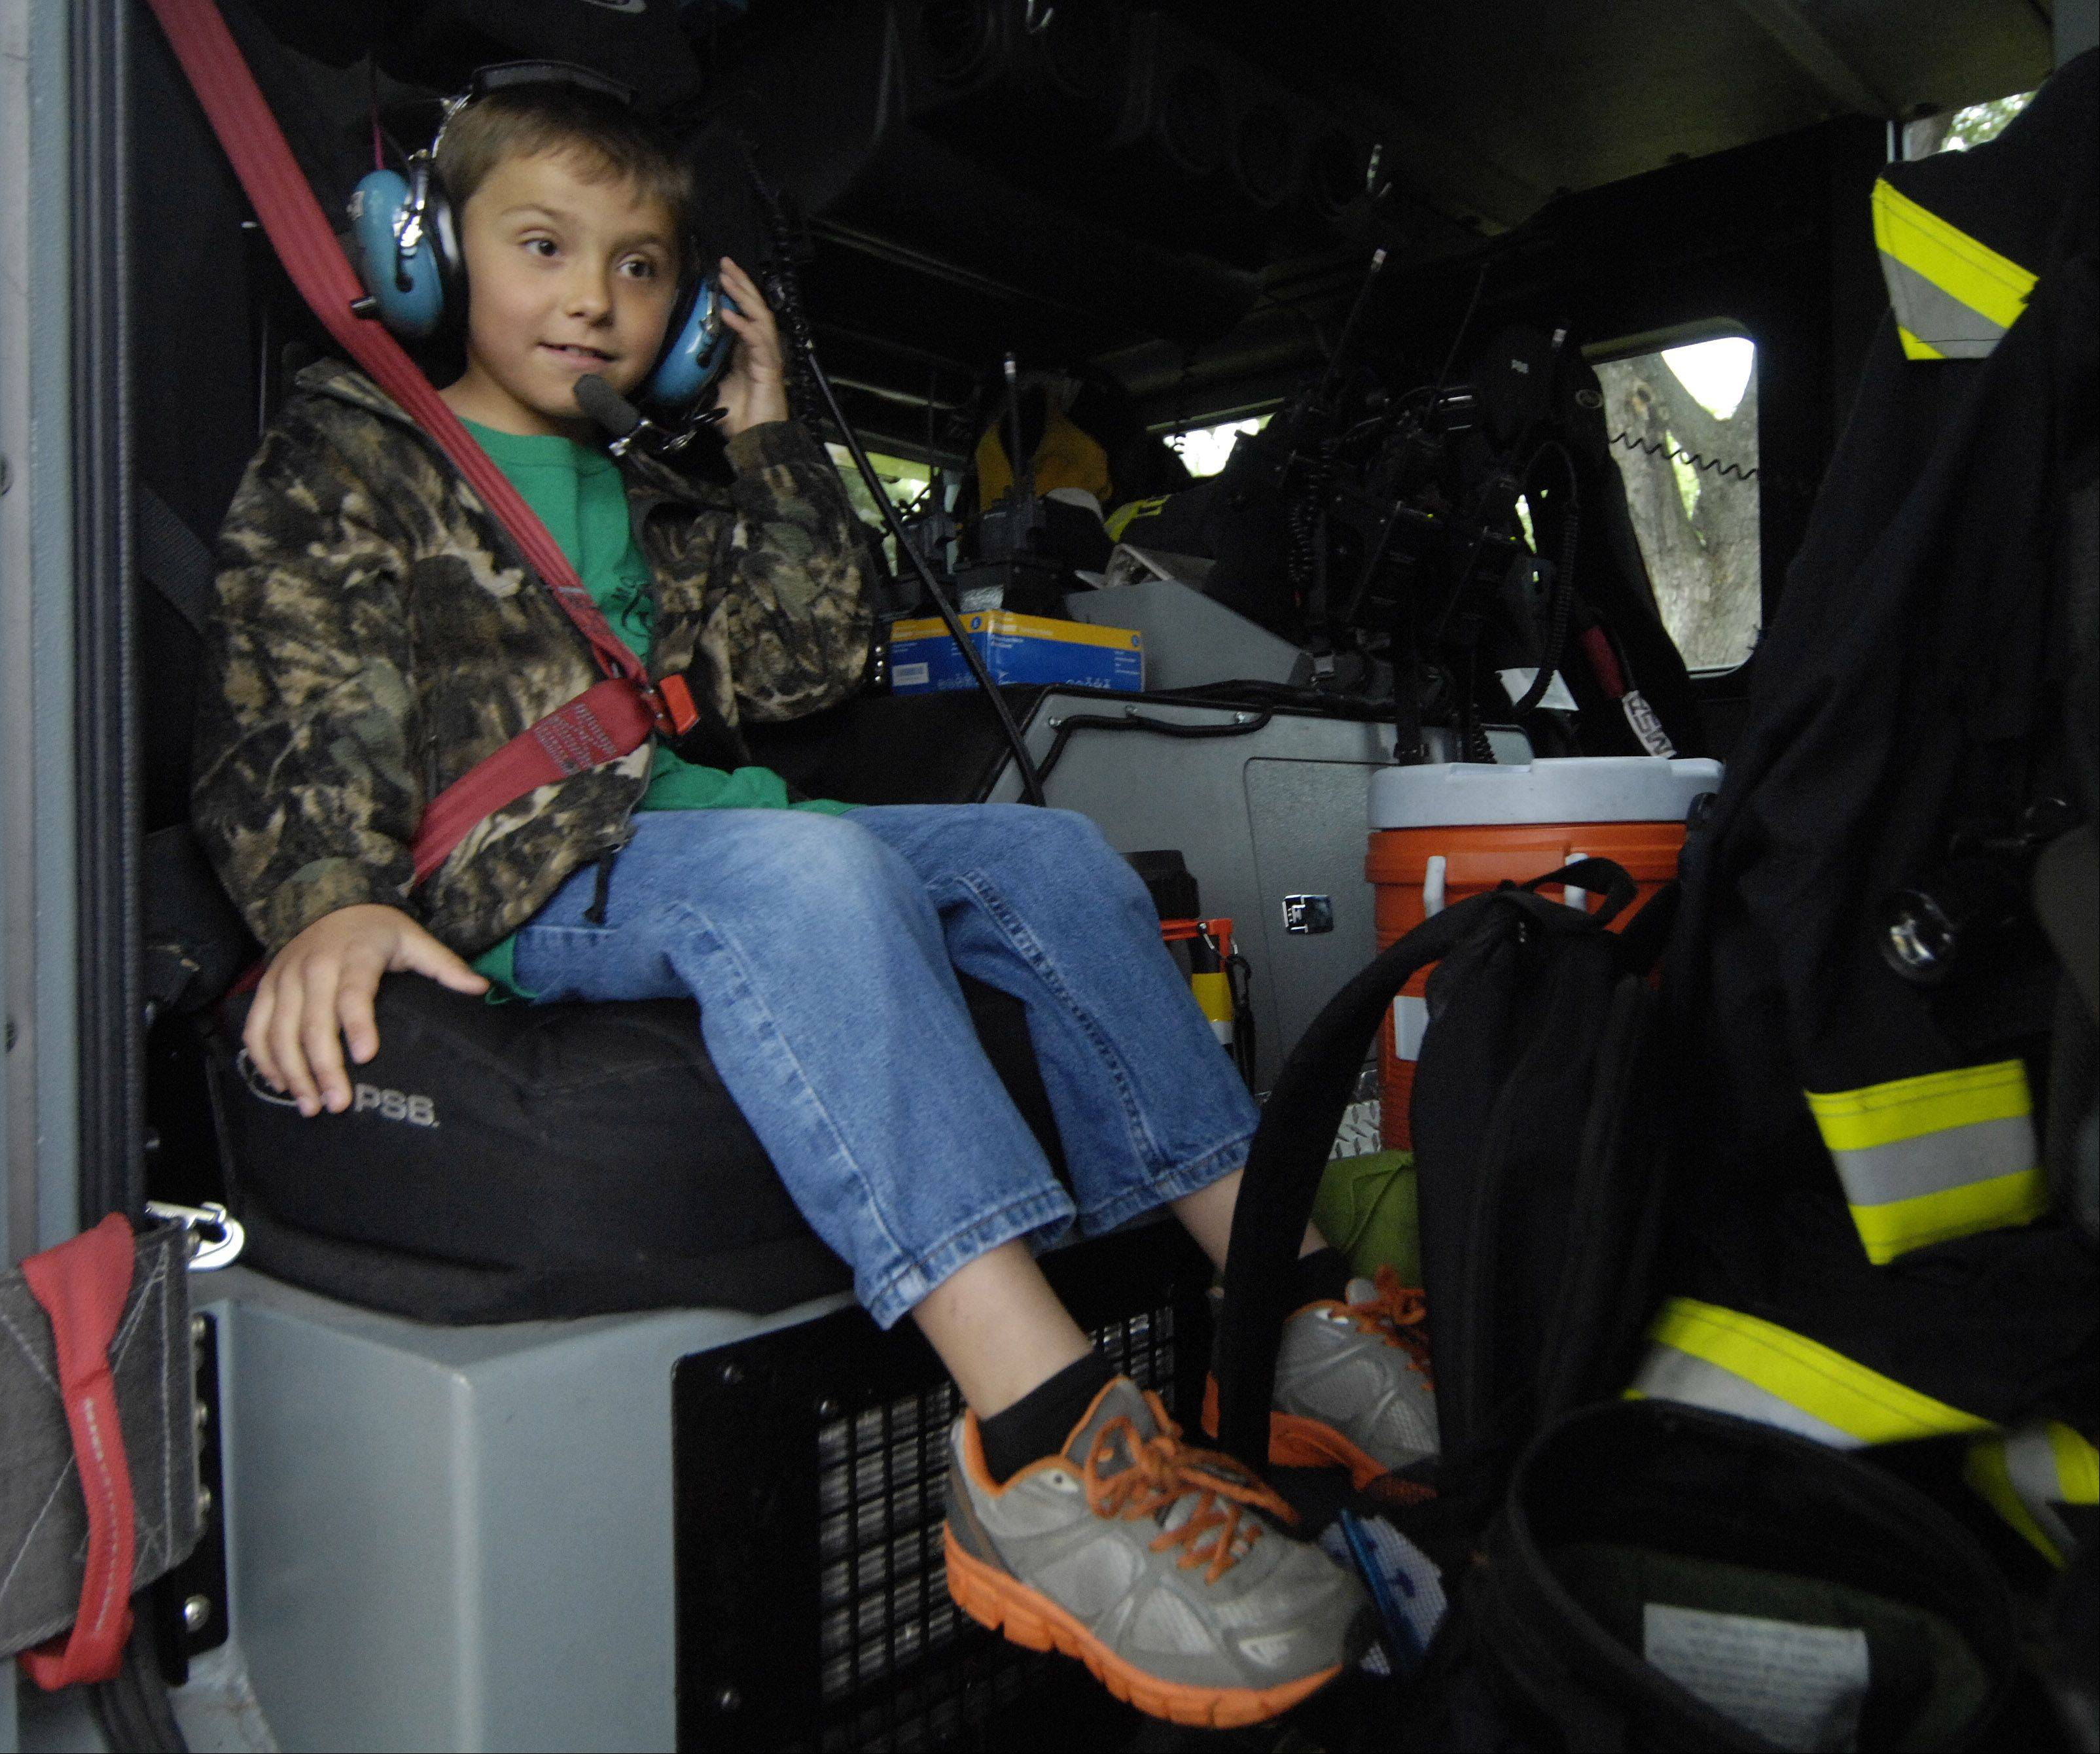 JOE LEWNARD/jlewnard@dailyherald.comSecond-grader Carter Jedras is buckled in as he and a friend get a ride on a fire truck to Fairview Elementary School in Mount Prospect Thursday. The opportunity was a prize won at a school fundraiser.